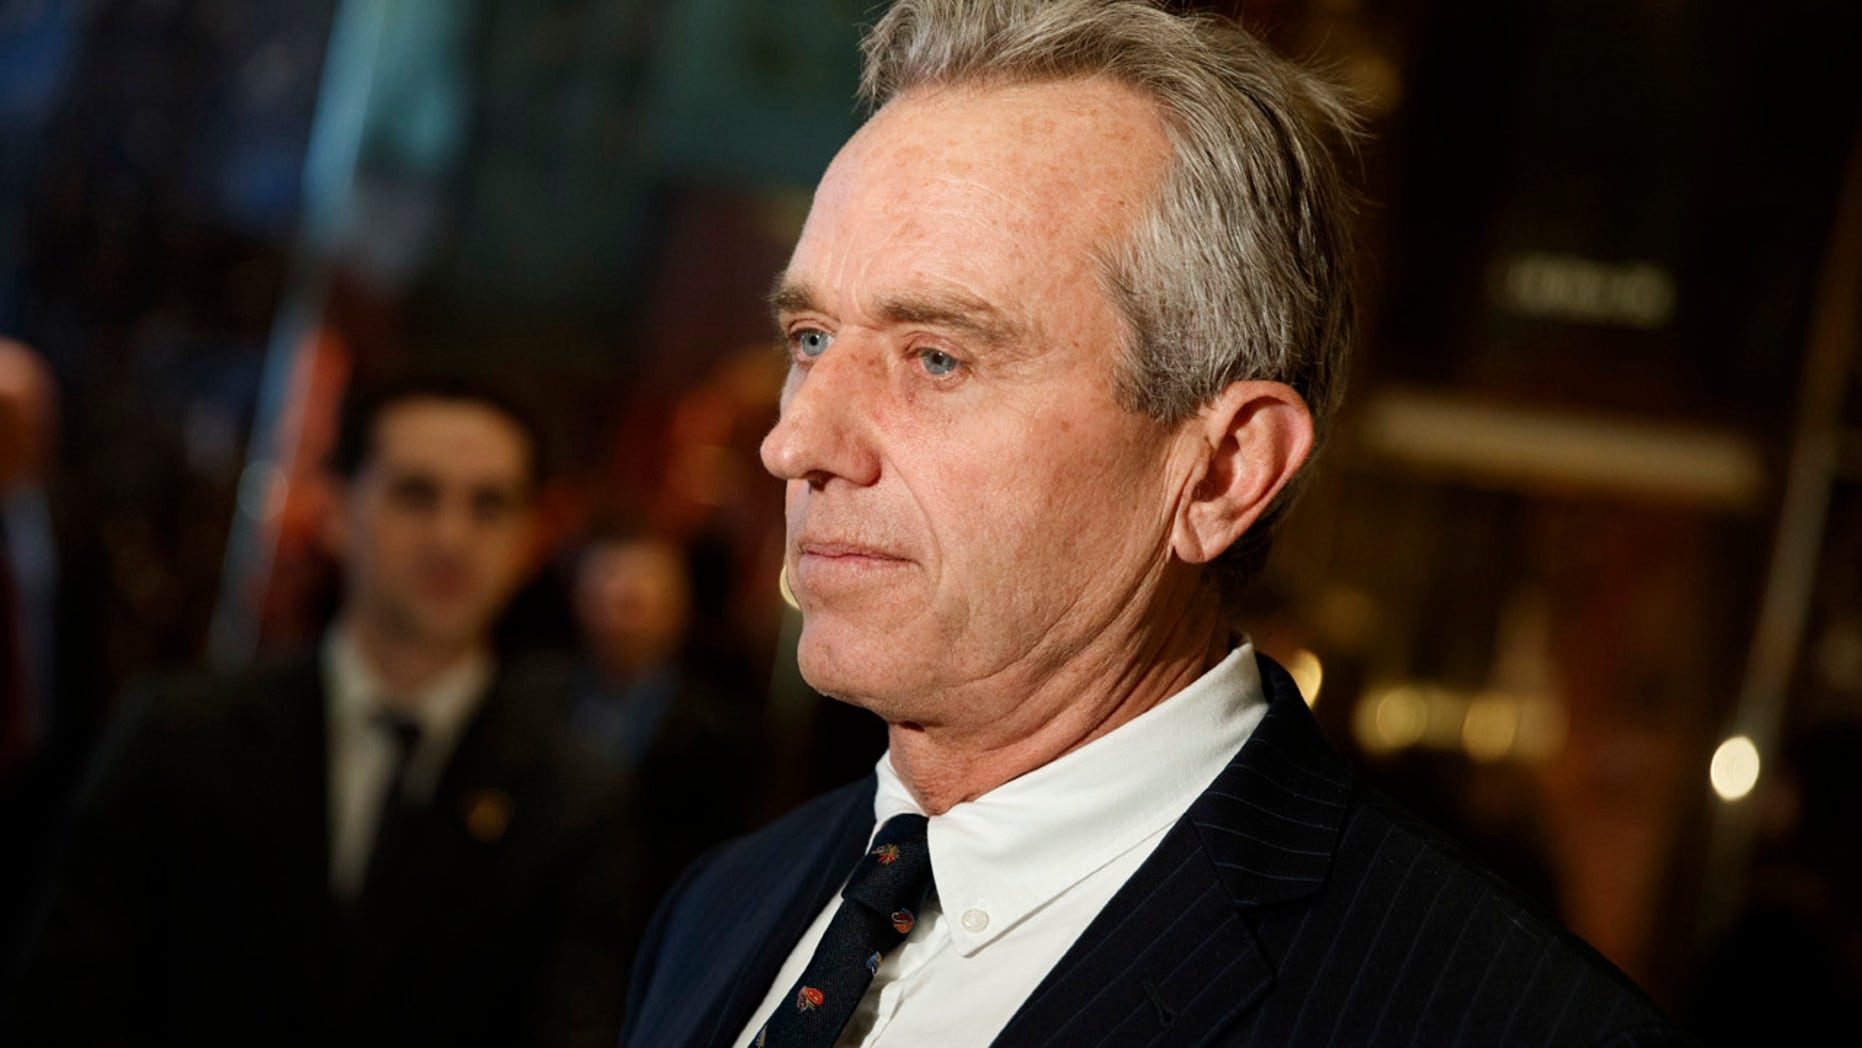 Trump Meets With Vaccine Skeptic >> Trump Meets With Vaccine Skeptic Rfk Jr To Discuss Safety Probe